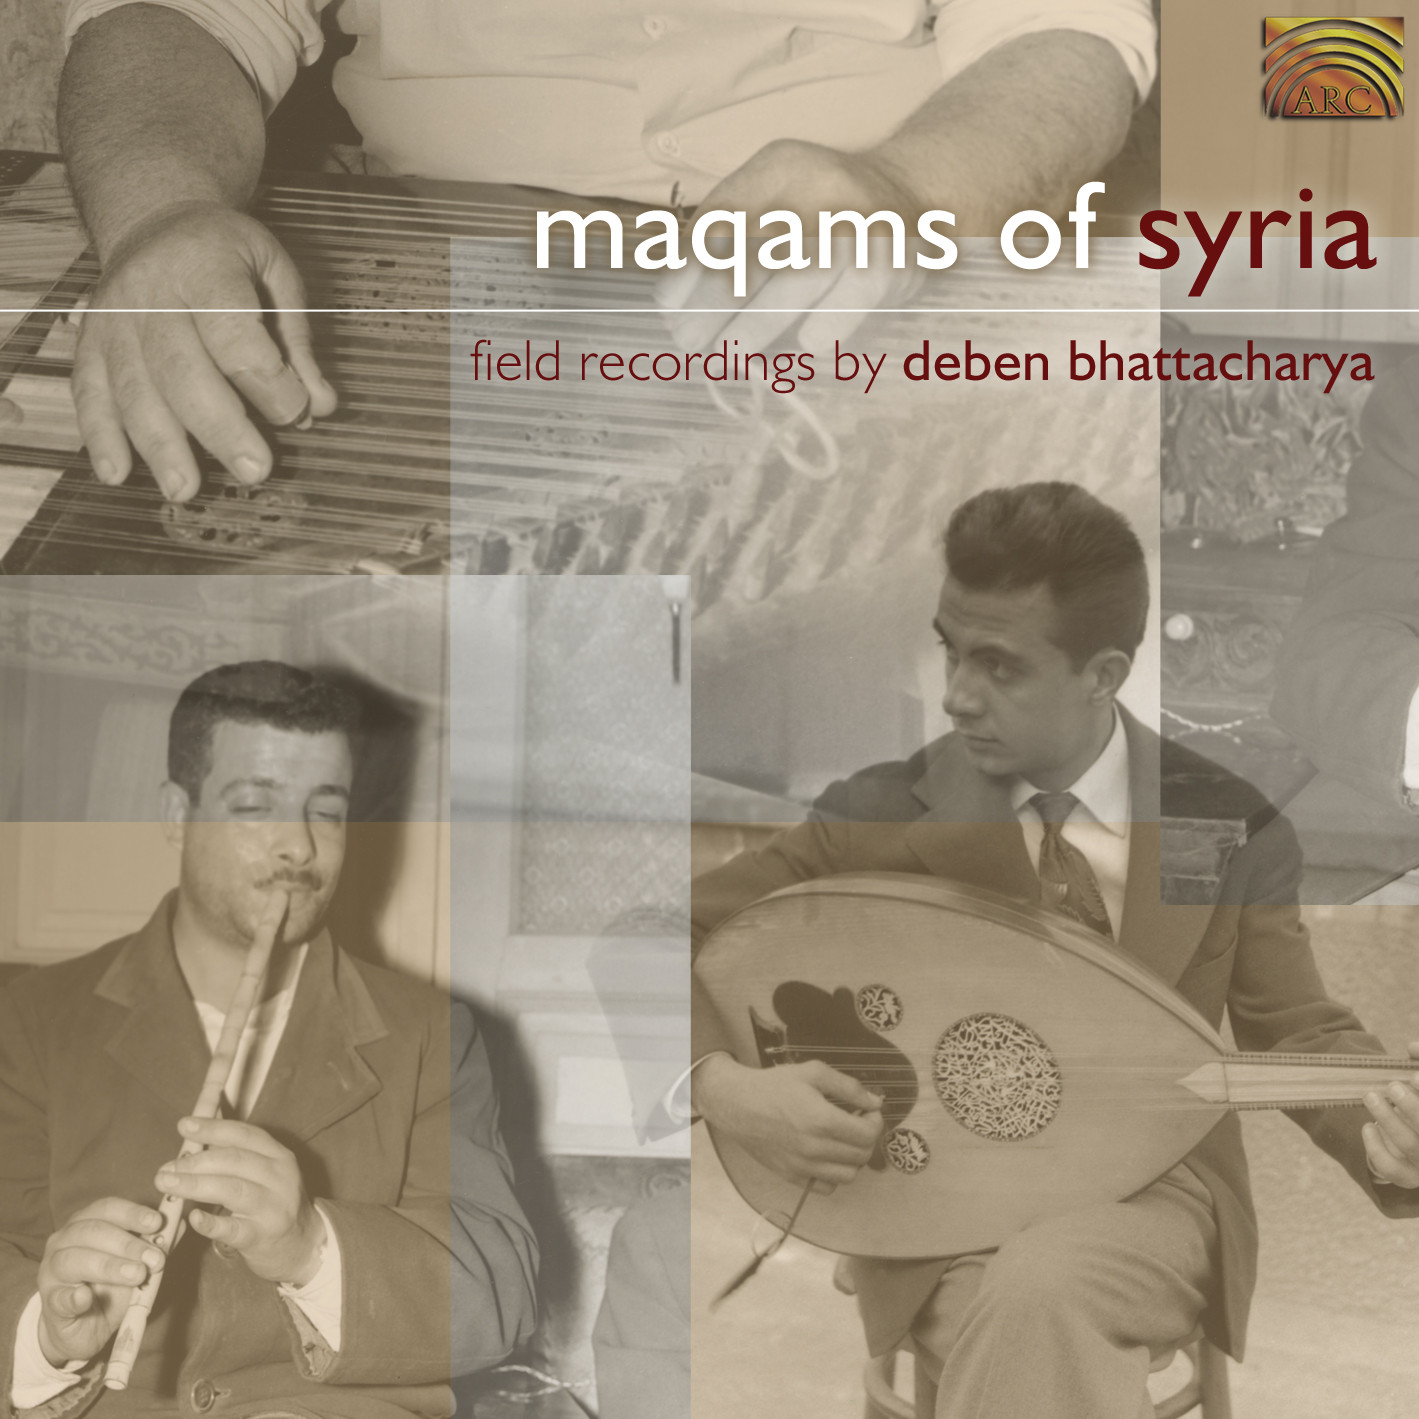 EUCD1765 Maqams of Syria - Field recordings by Deben Bhattacharya